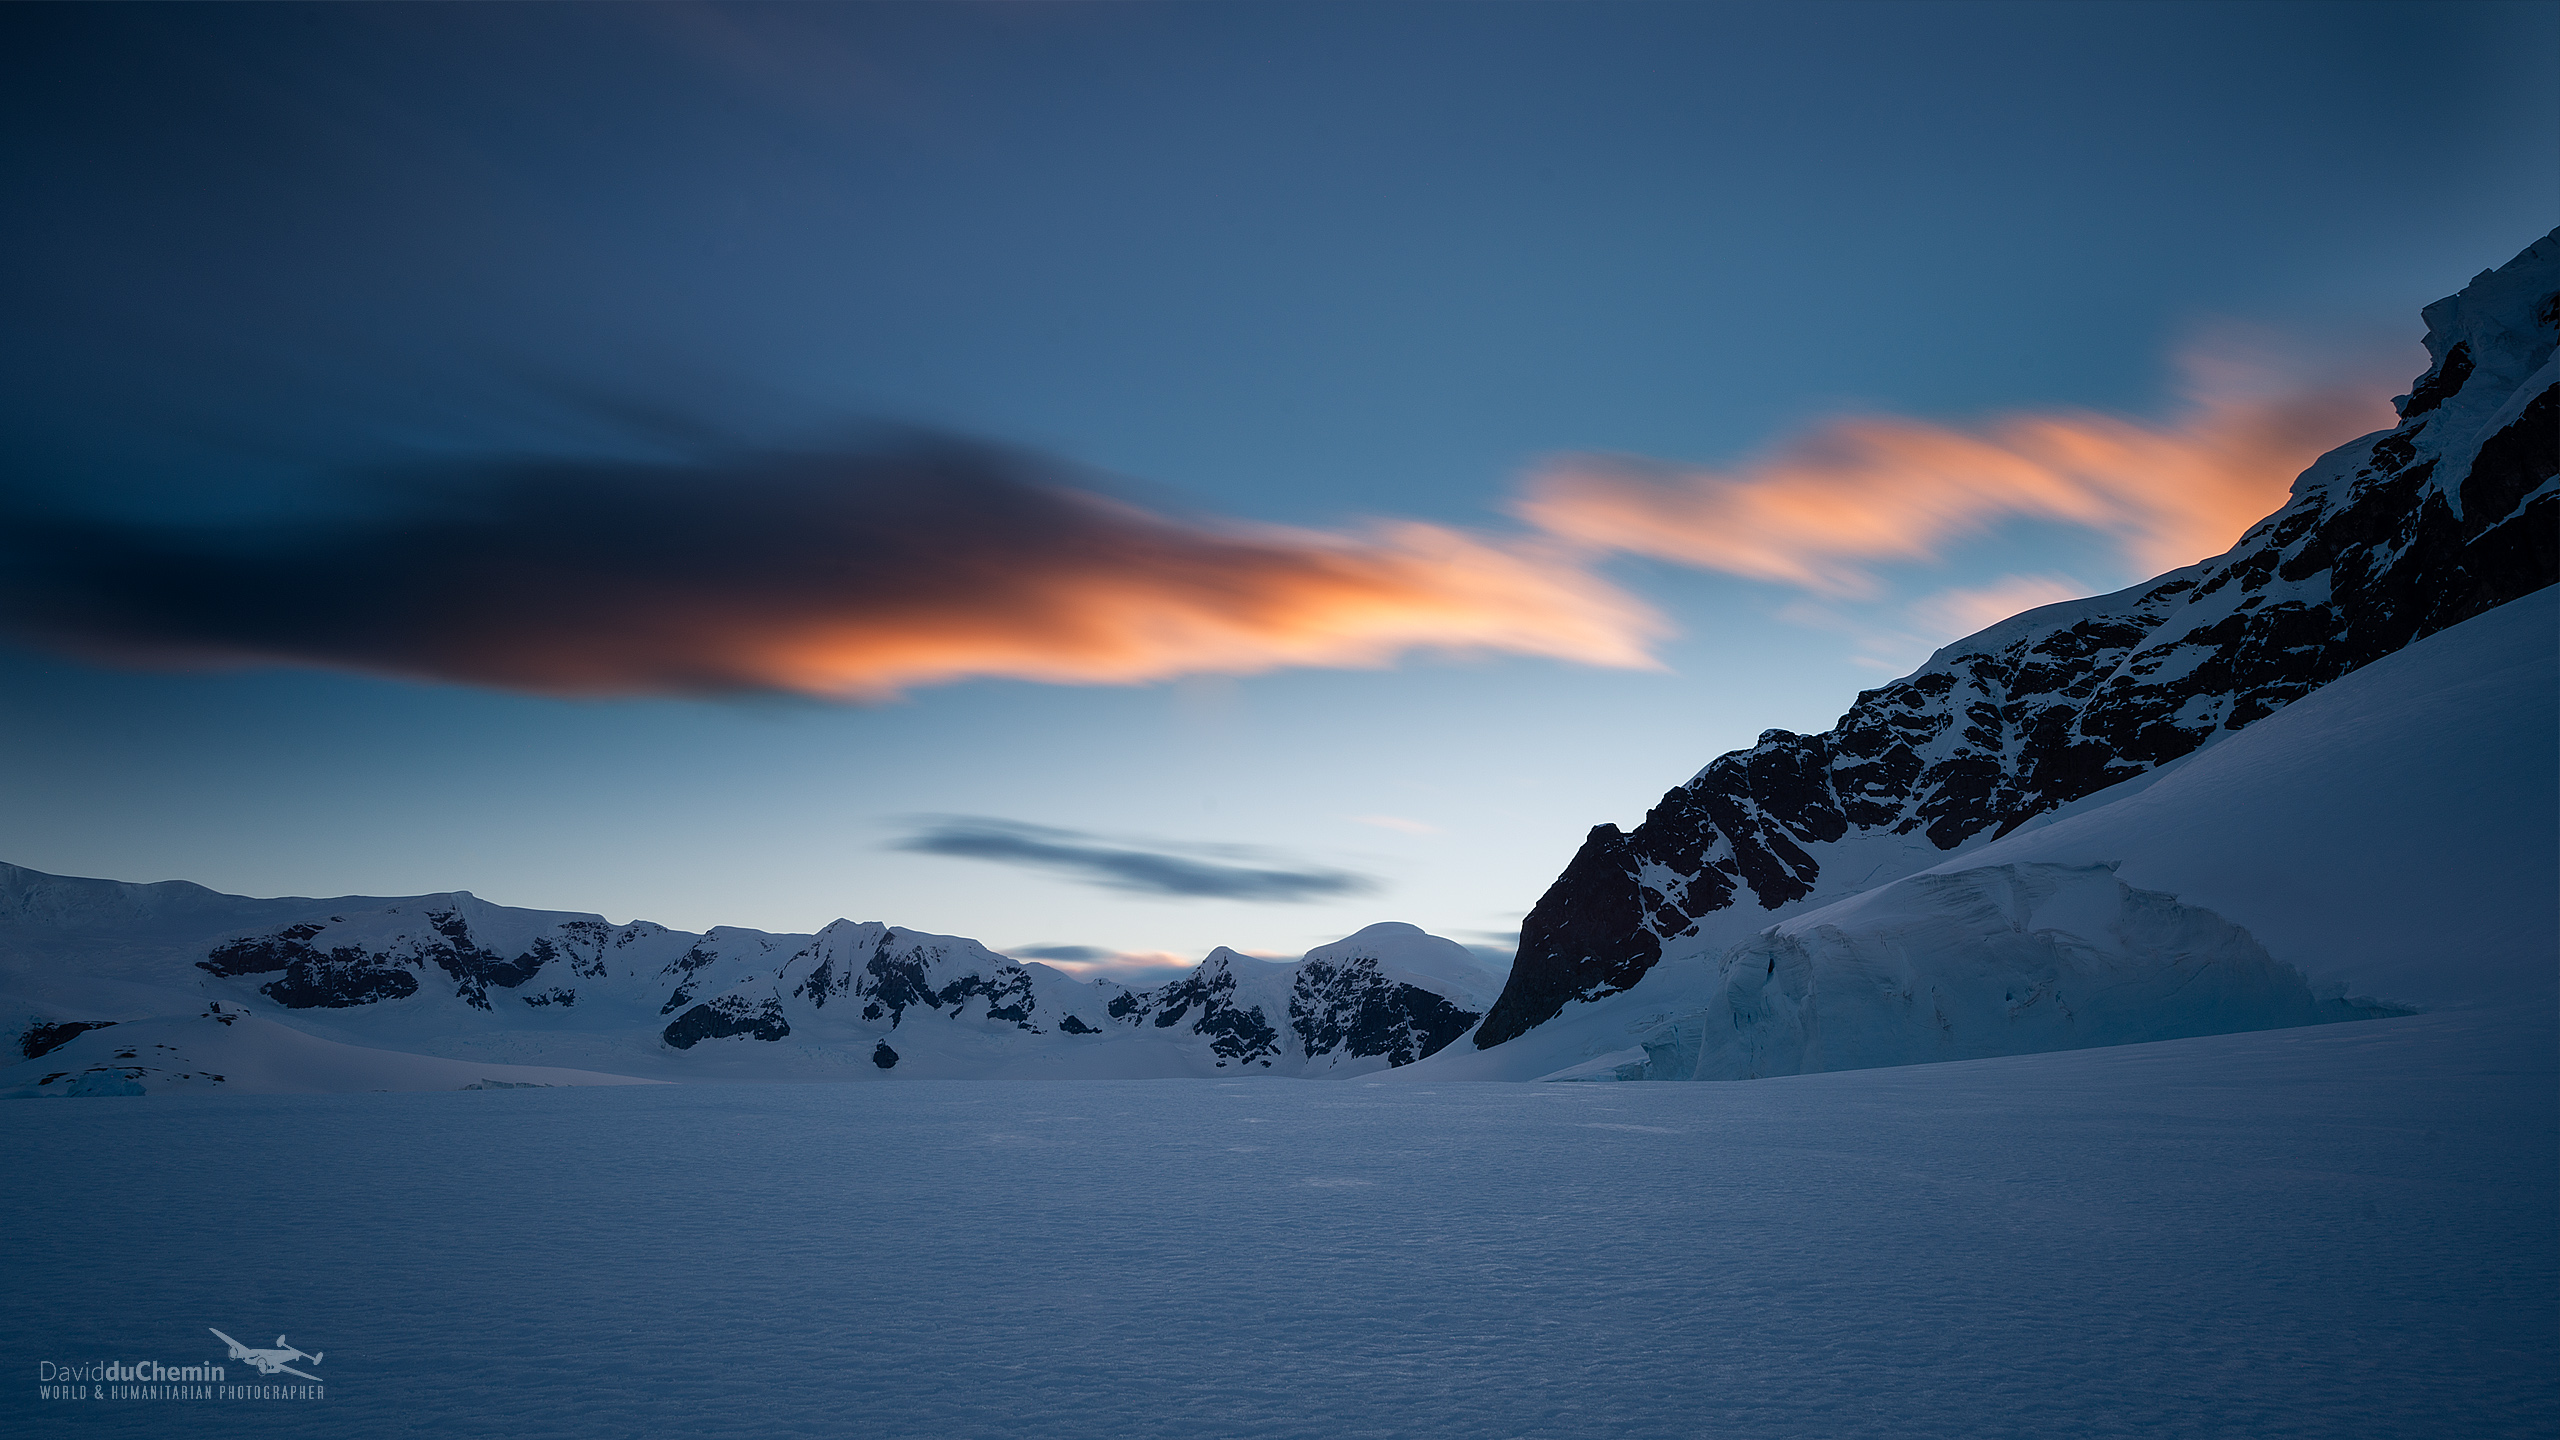 antarctica and clouds wallpaper - photo #42